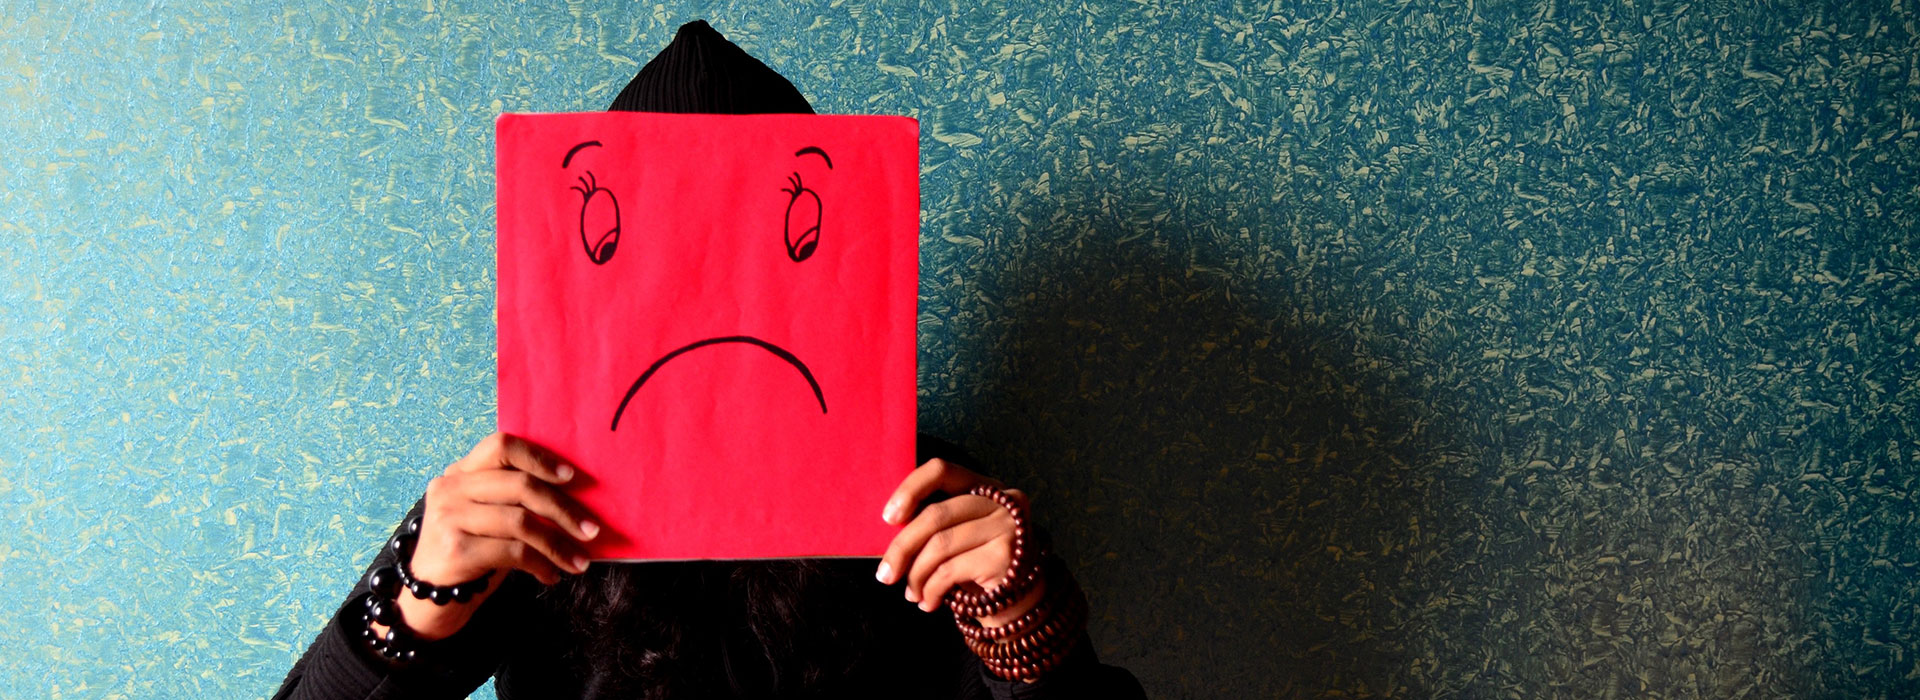 A person holding up a red square in front of their face with a sad face drawn on it.